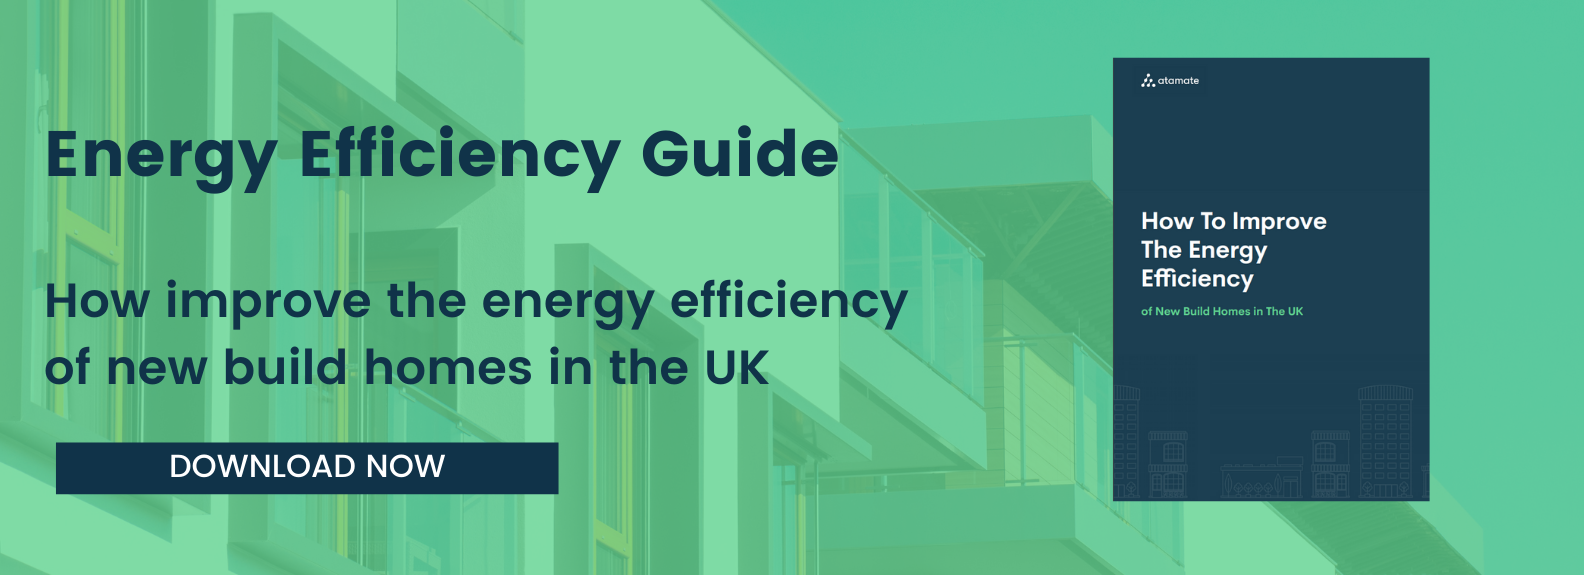 DOWNLOAD OUR ENERGY EFFICIENCY GUIDE